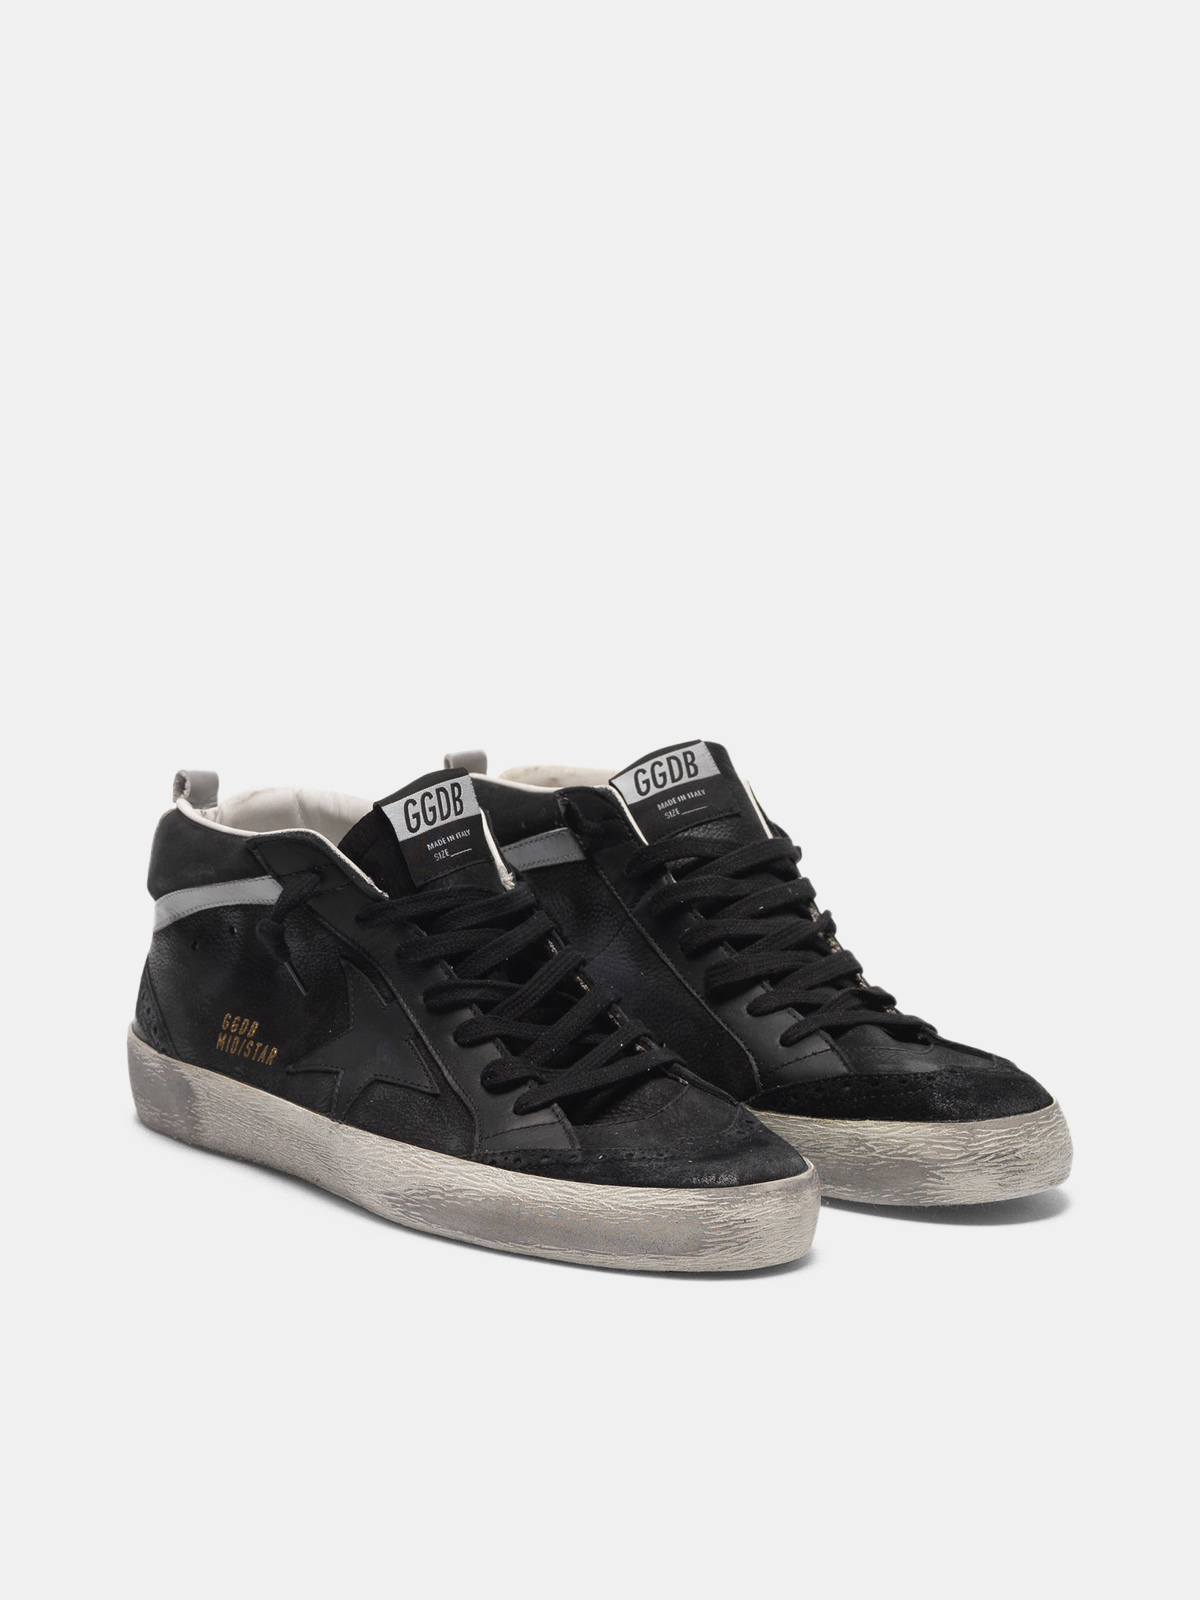 Golden Goose - Mid Star sneakers in leather with nubuck inserts  in